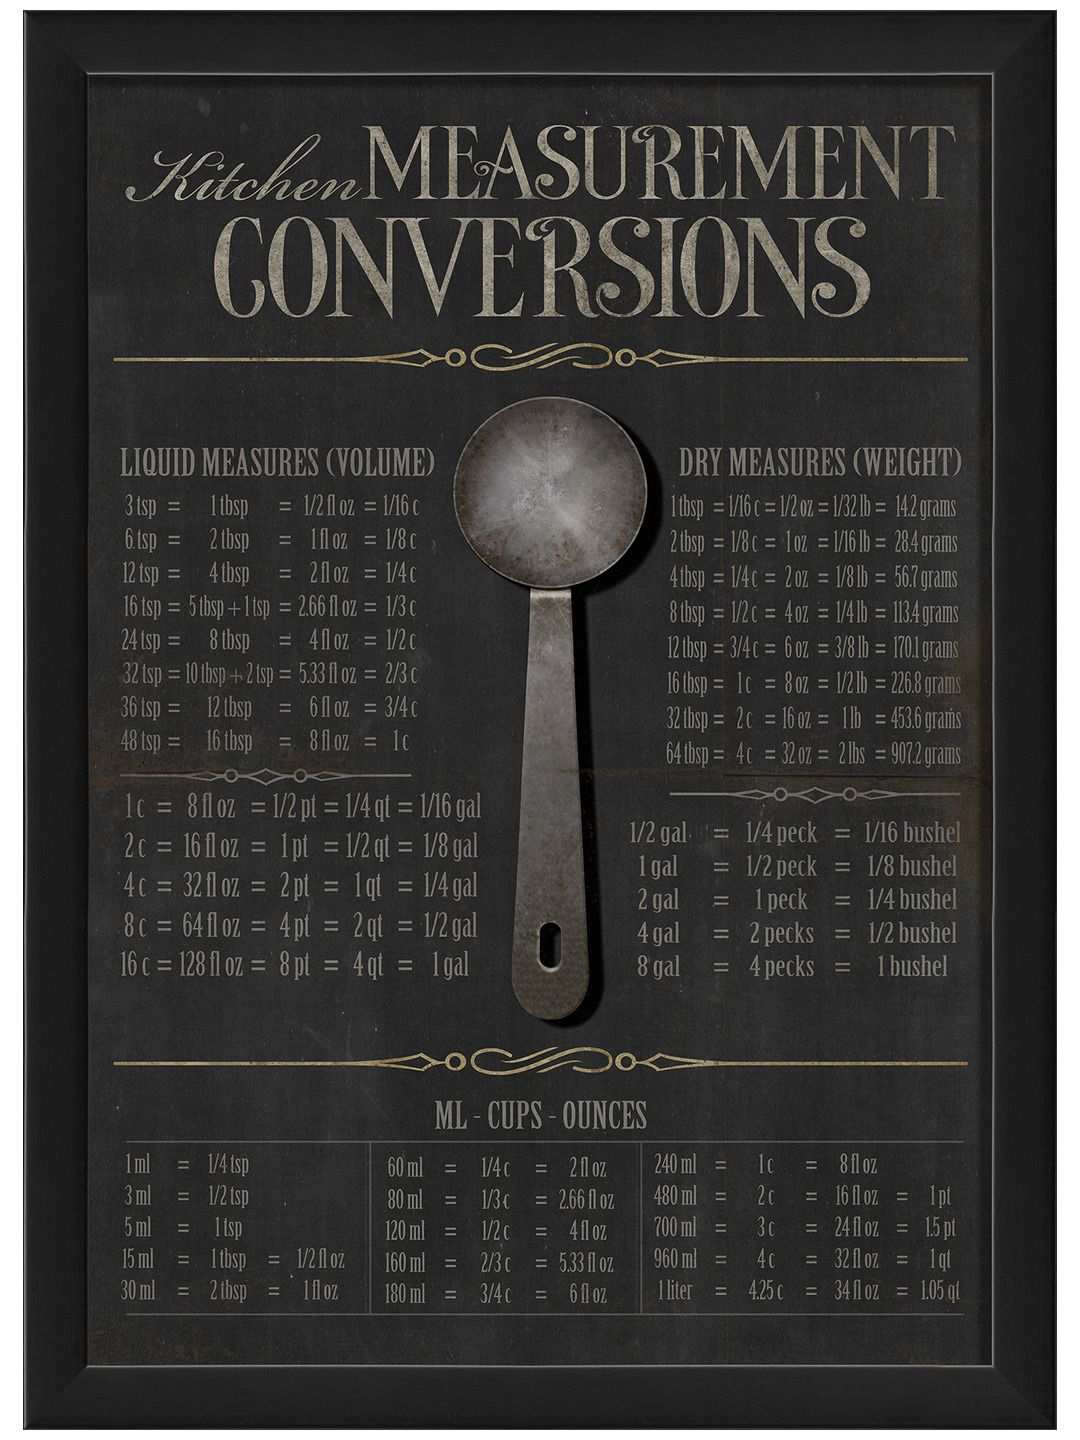 What a nice way to display!.... Kitchen Measurement